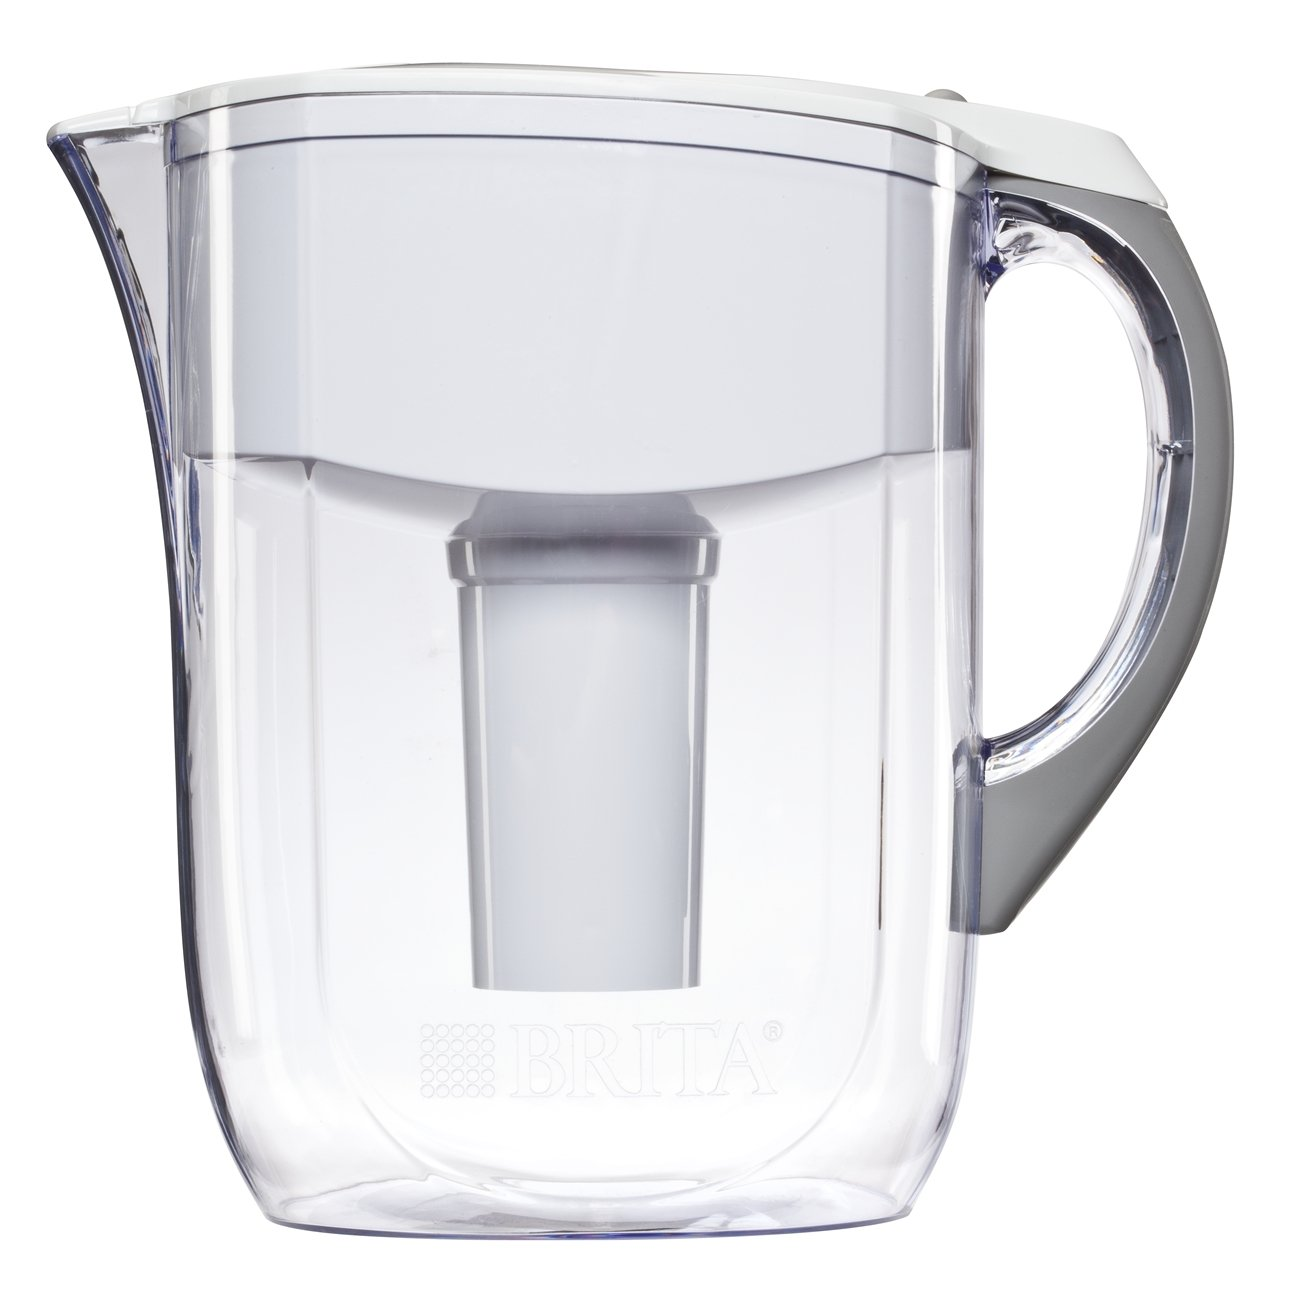 water filter pitcher.  Pitcher Most People Who Purchase Disposable Water Bottles Do So Because They  Perceive It To Be Cleaner And Safer Than Tap Water This However Is Not The Case And Water Filter Pitcher H